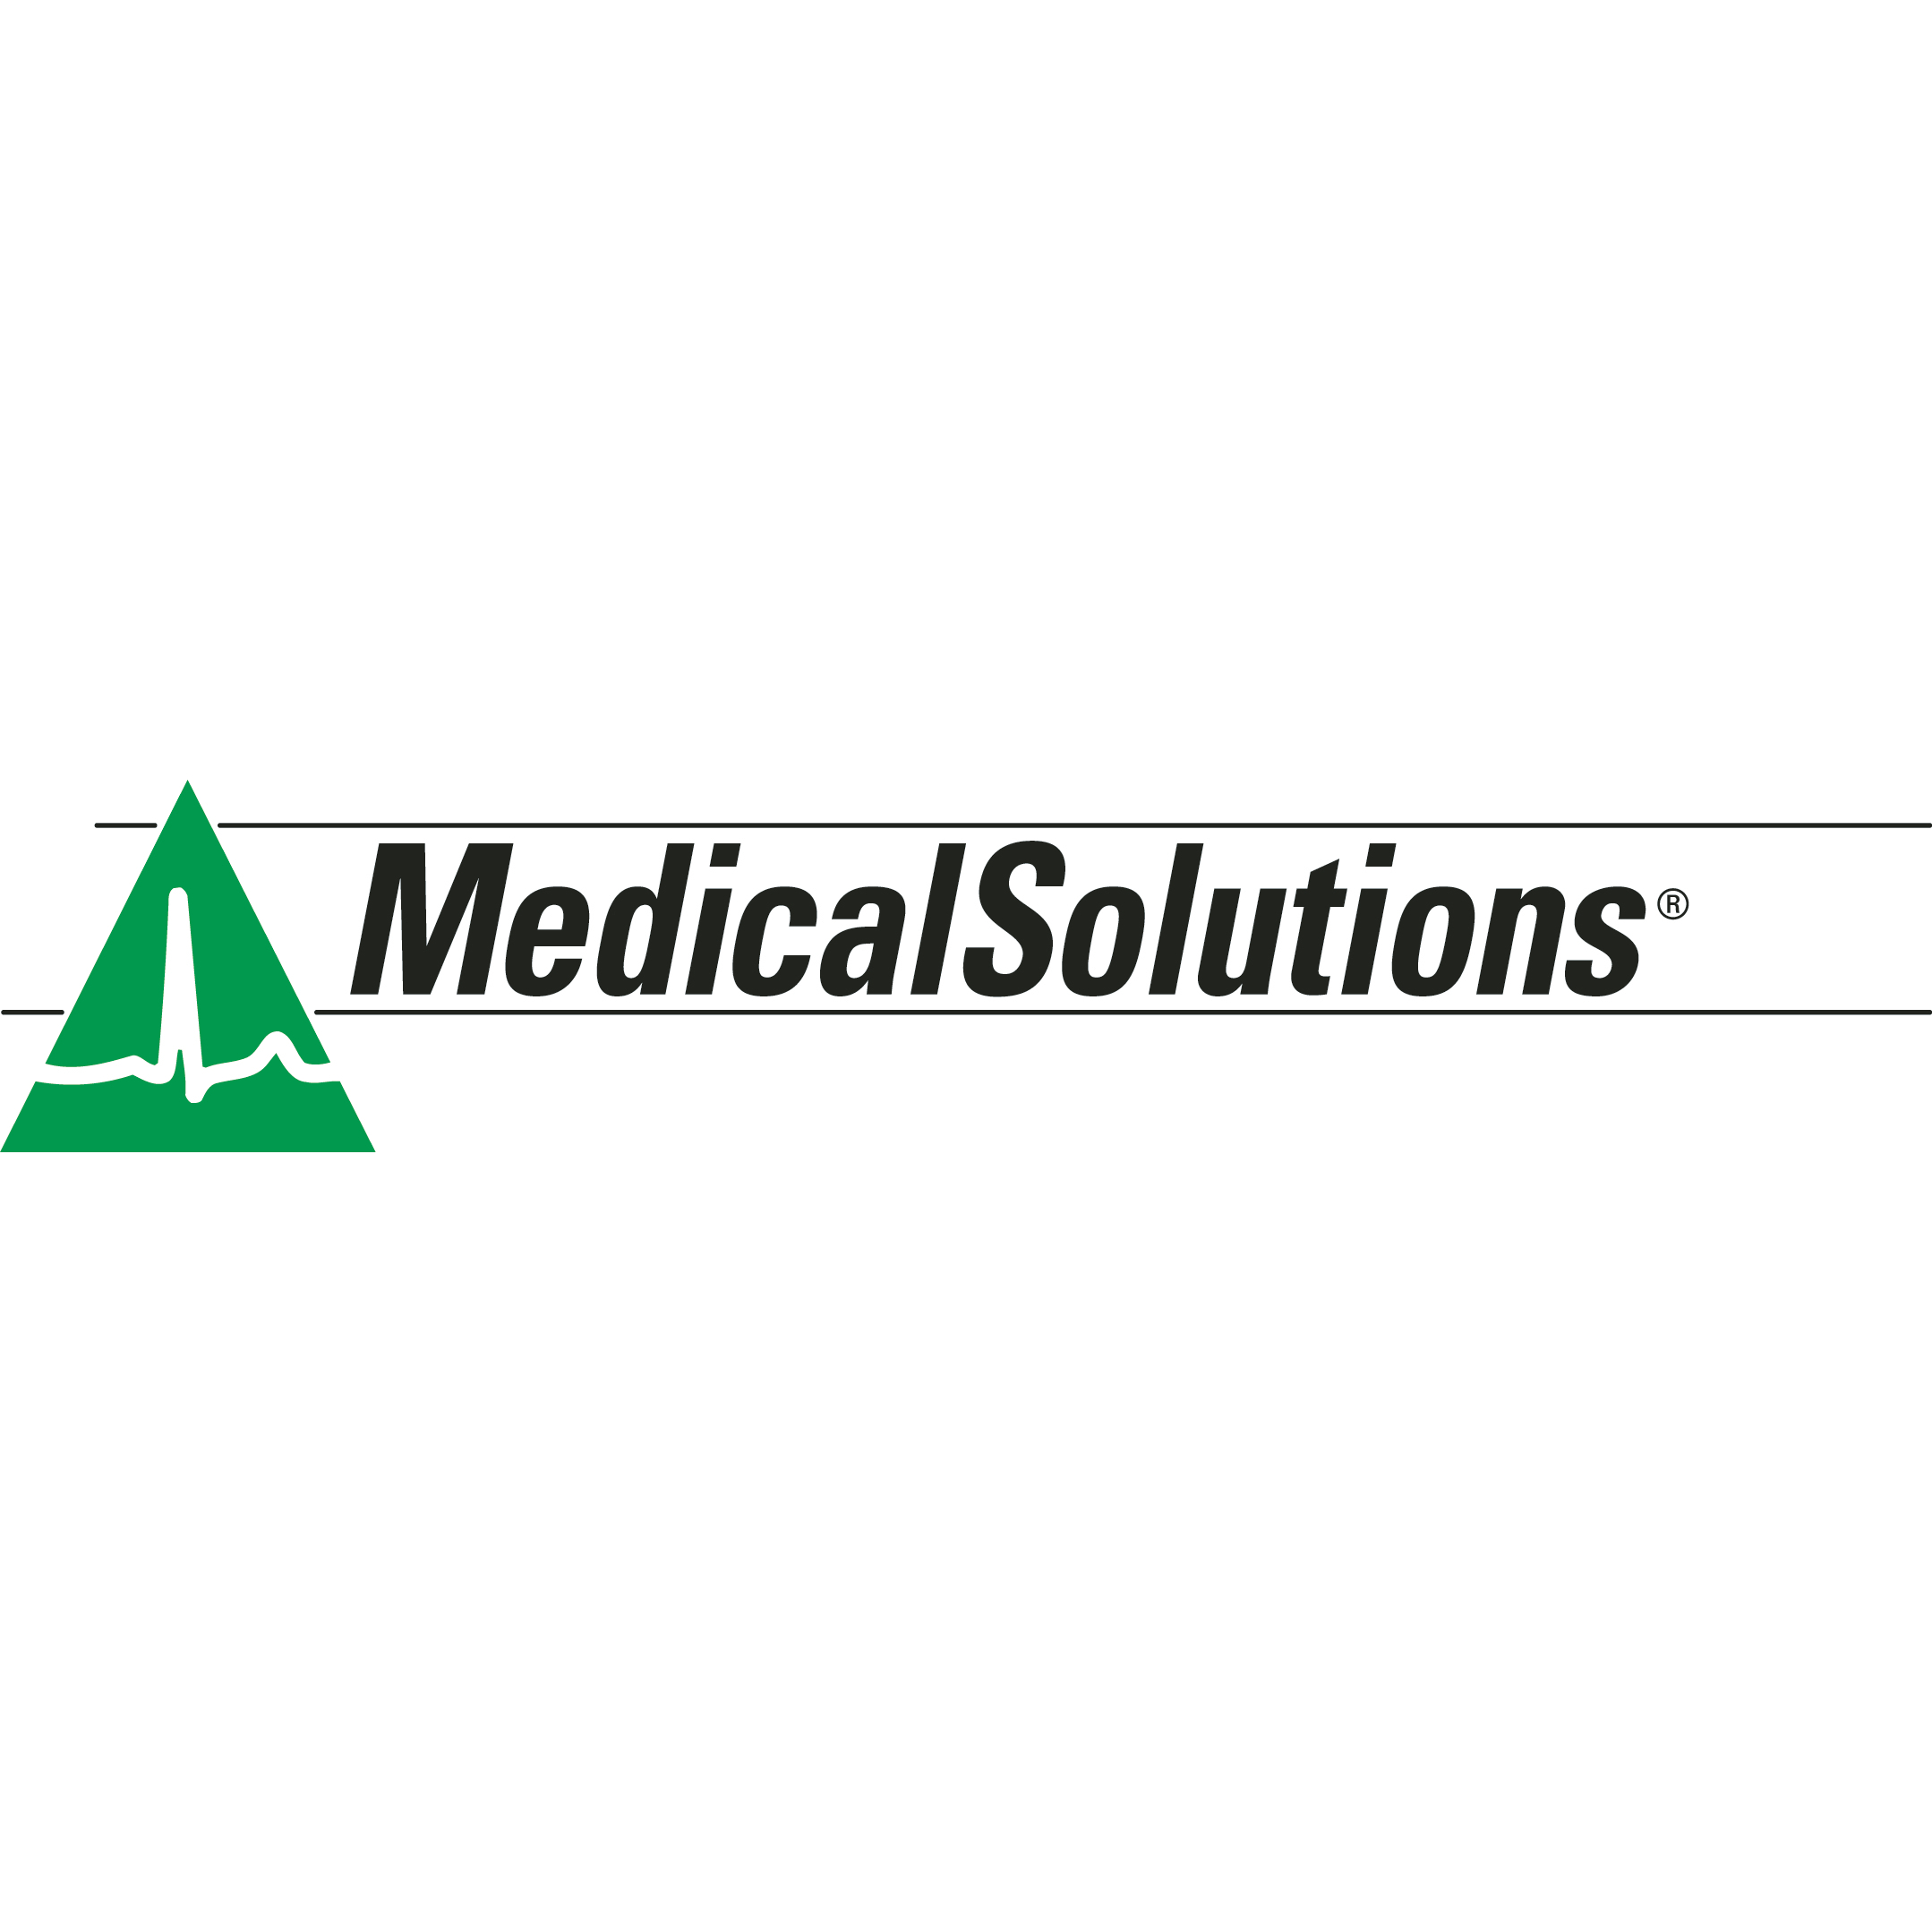 Medicalsolutions E Walker Springs Lane Knoxville Tn